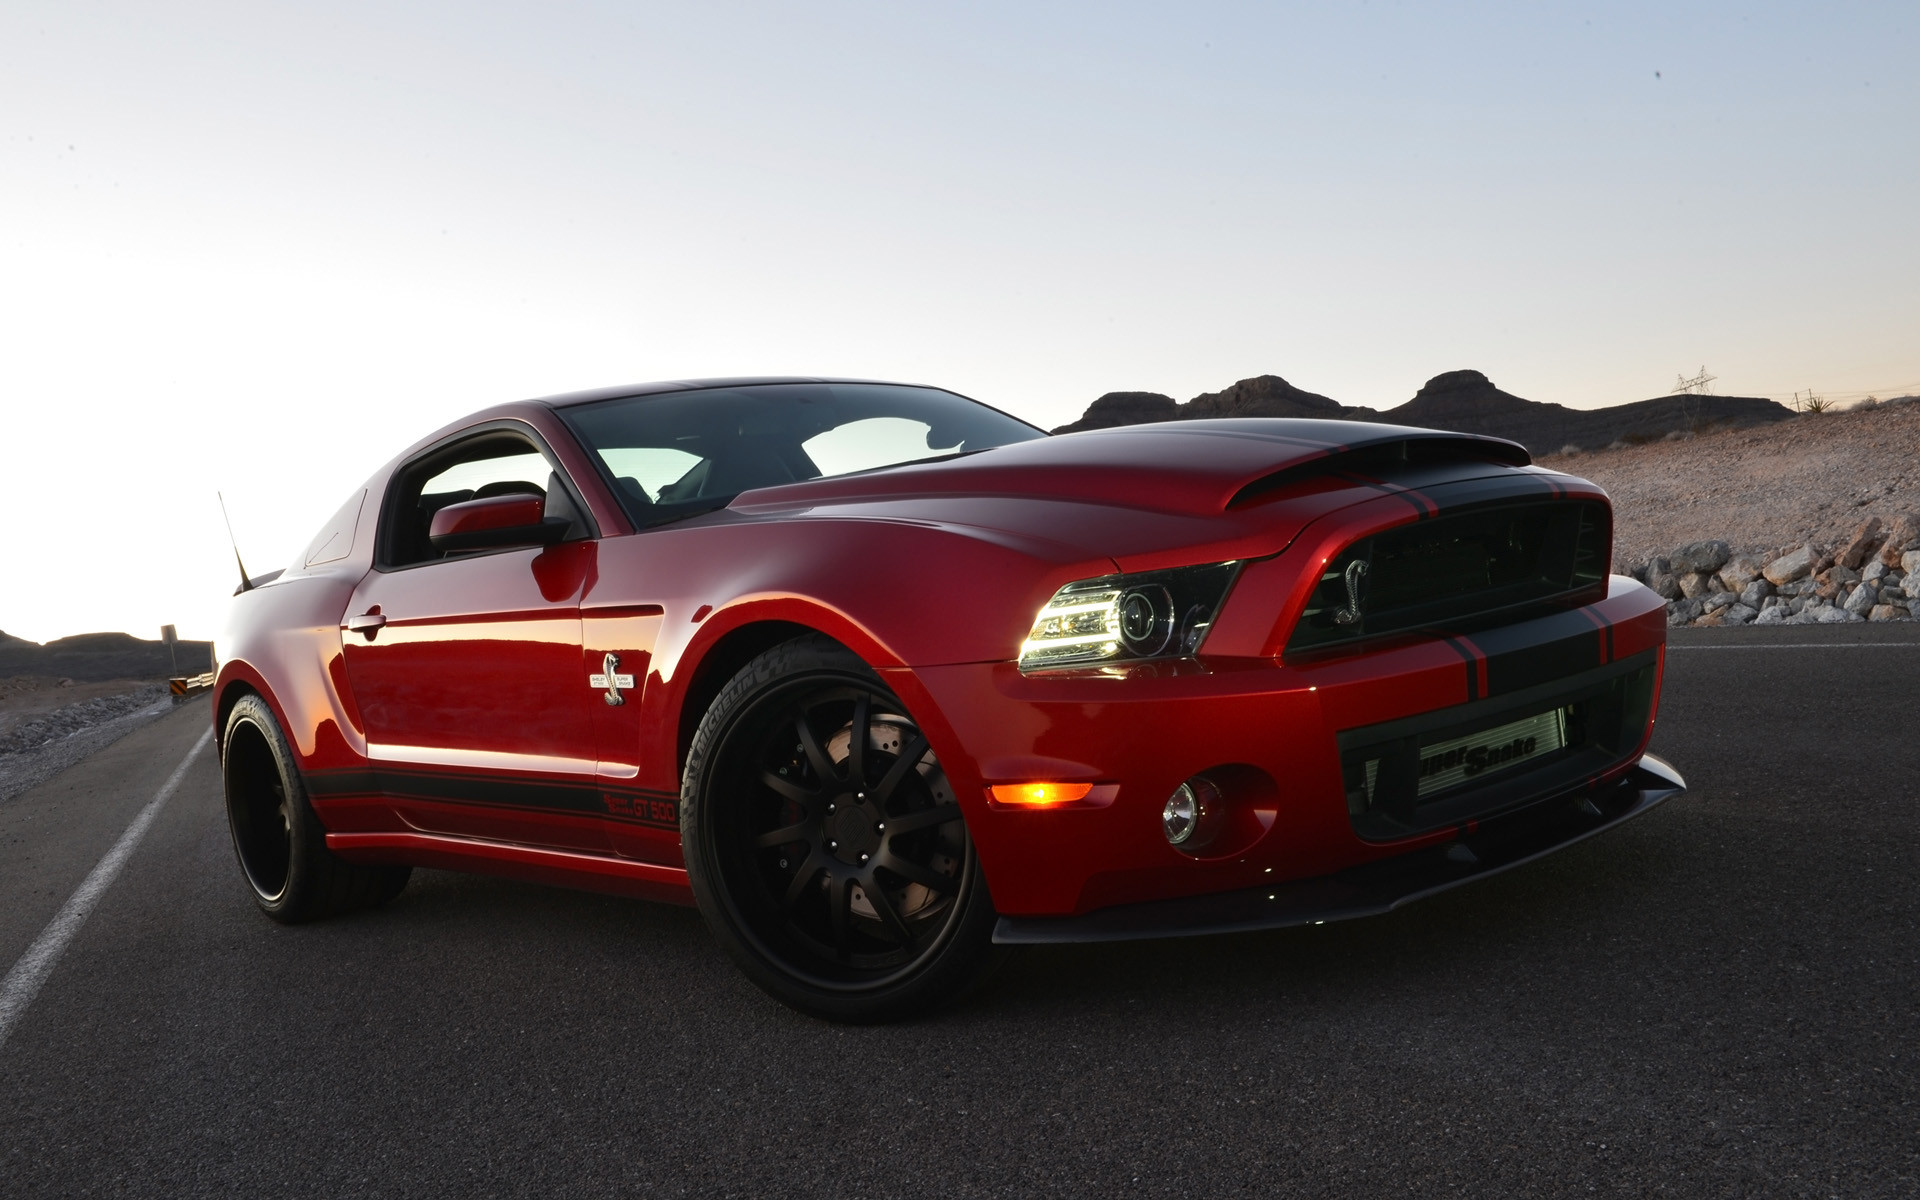 Res: 1920x1200, 2013 Shelby GT500 Super Snake muscle supercar ford mustang j wallpaper |   | 140512 | WallpaperUP